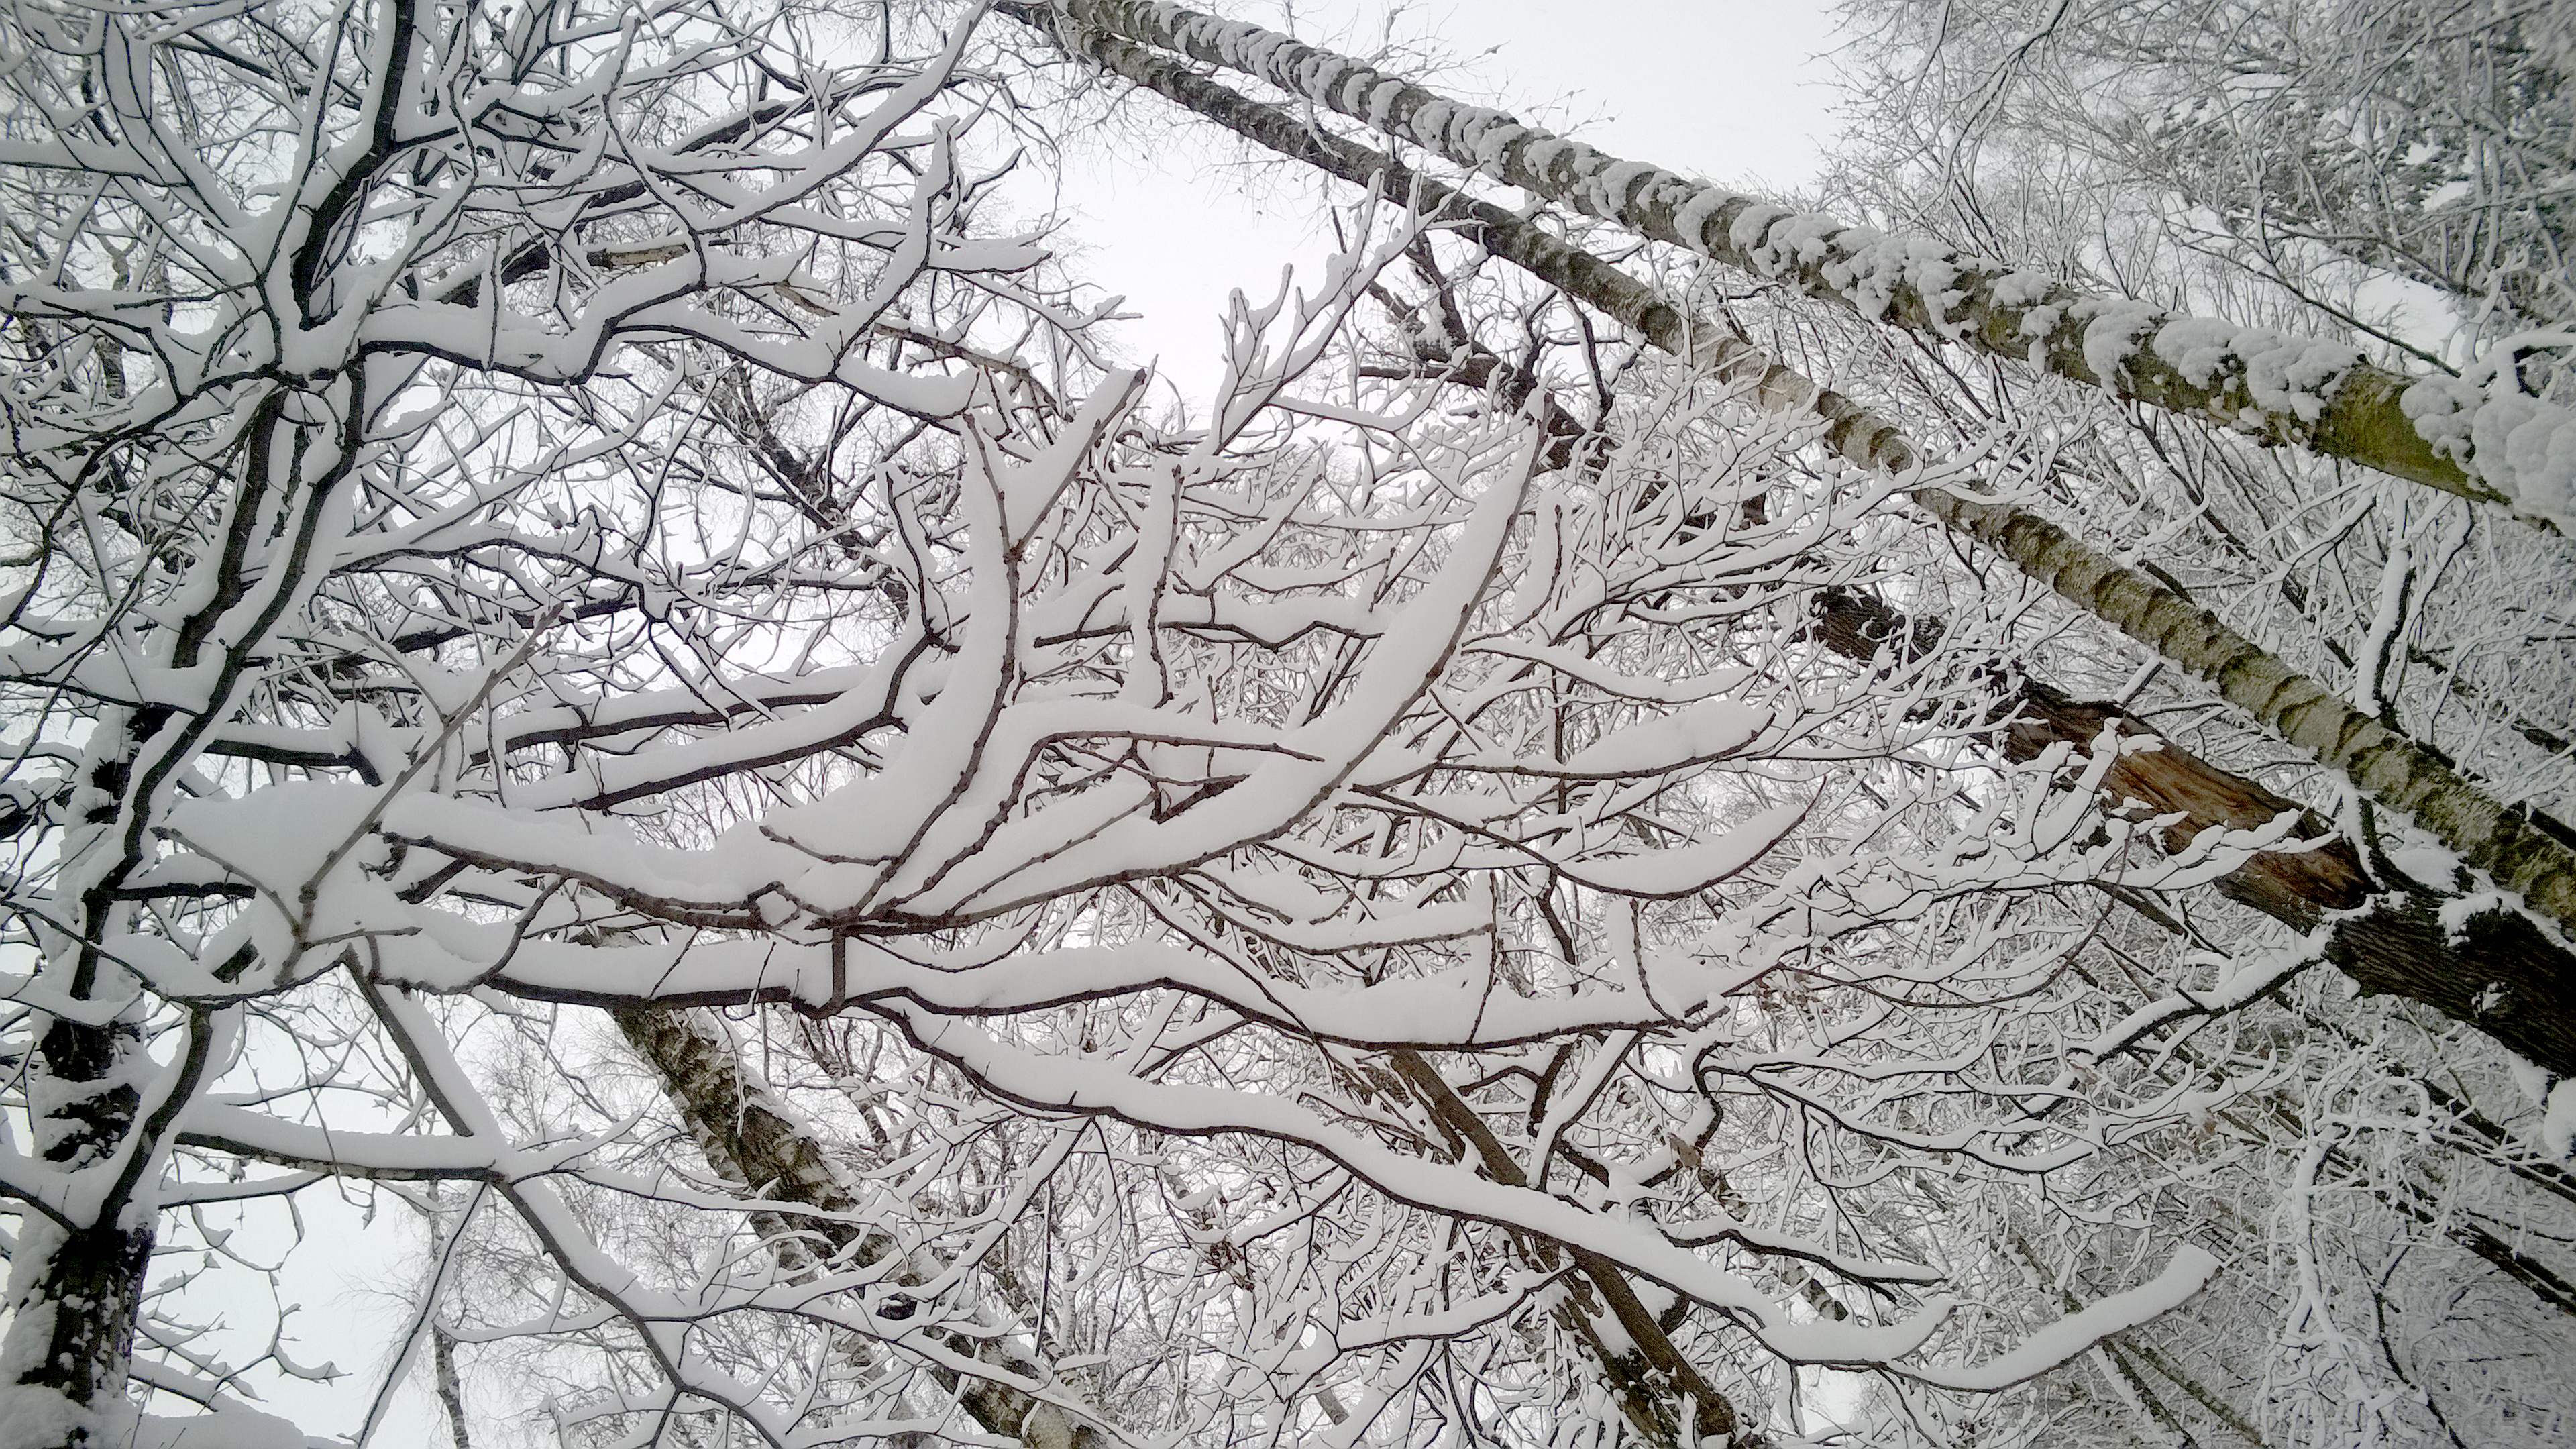 Winter park, tree branches covered with snow